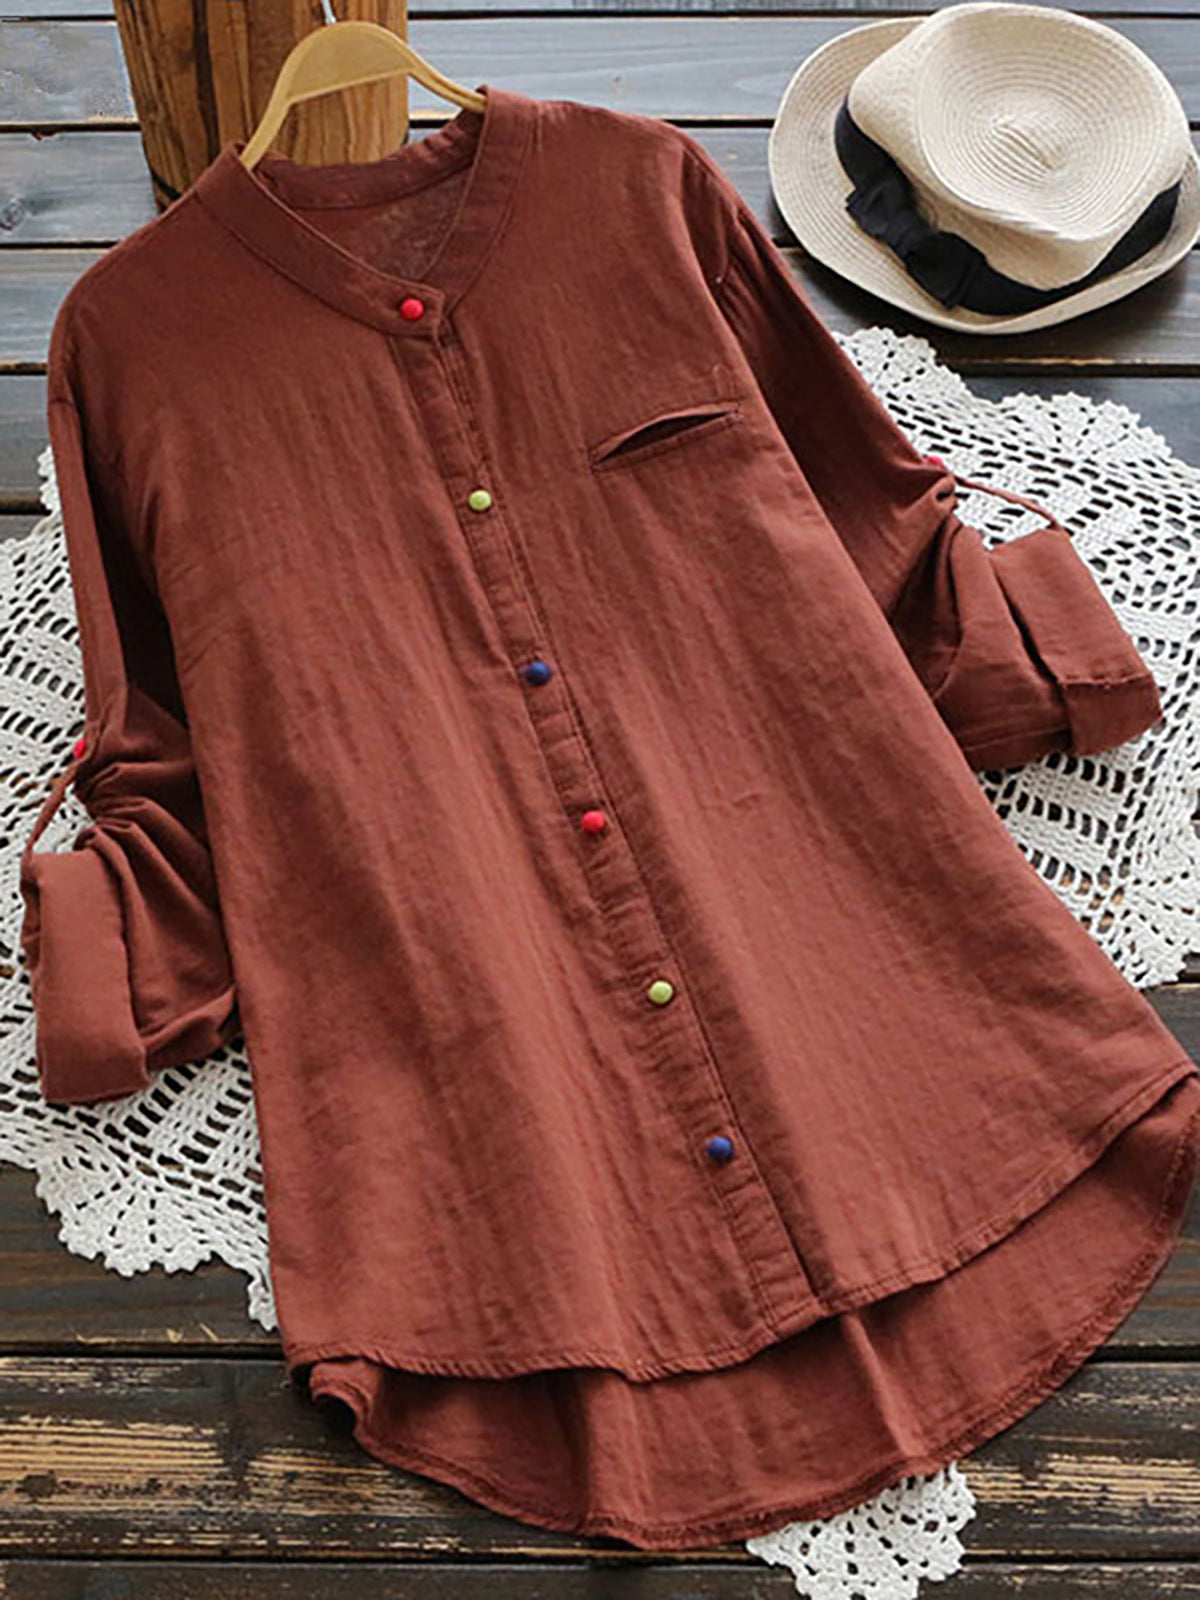 4982fd17e58 Women Solid Color Plus Size Tops Long Sleeve Causal Blouses for All Season